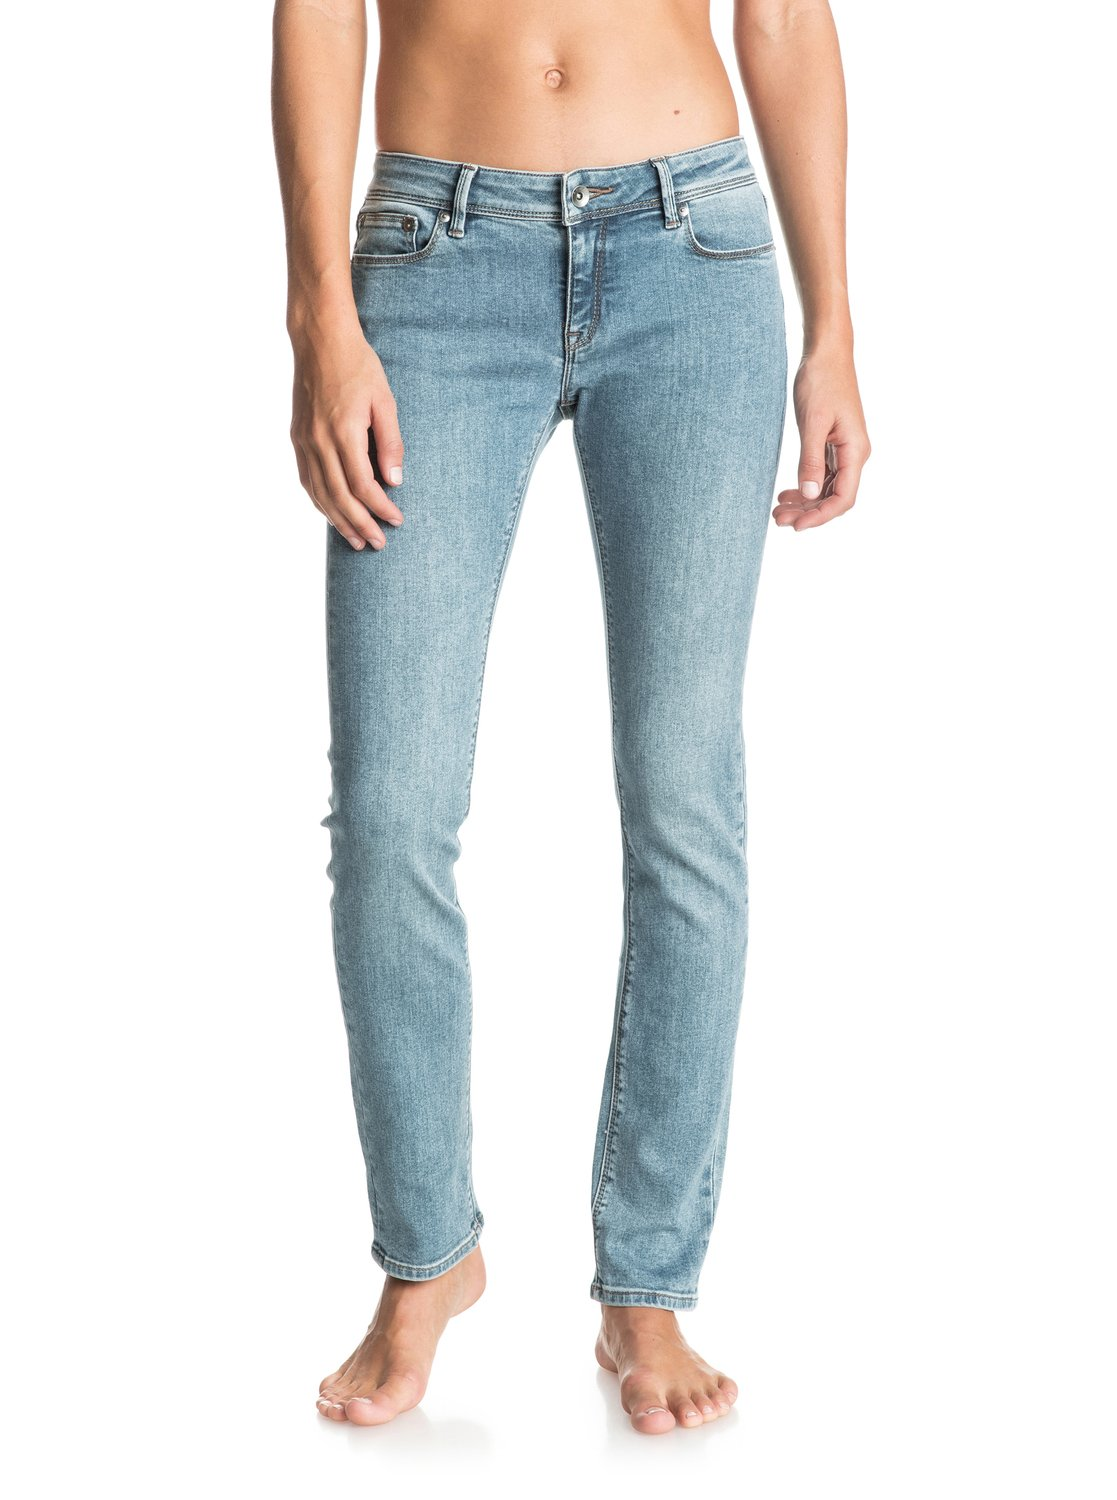 Denim Bloom Women's Classic High Waisted Super Skinny Vintage Blue Wash Jeans. $ $ 50 99 Prime. out of 5 stars 5. HALE. Our Brand. HALE Women's Joyce Sculpted High Rise Skinny Crop Jean. $ $ 48 50 Prime. 4 out of 5 stars Denim Bloom. Our Brand.